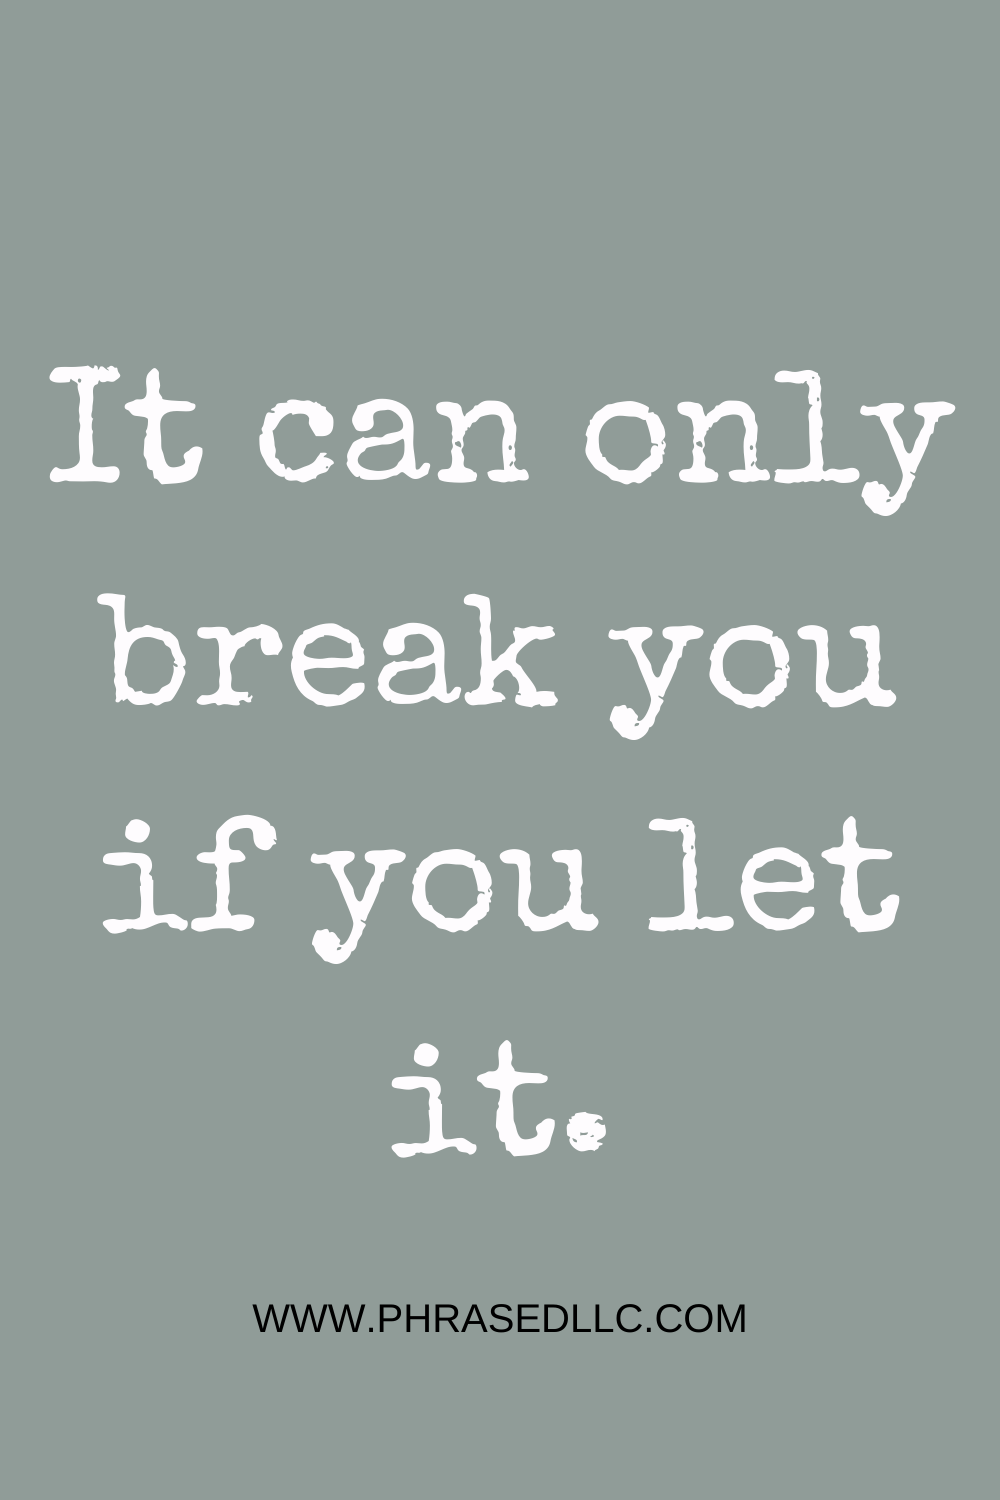 Short inspirational quote about being broken for positive motivation to get through life struggles.